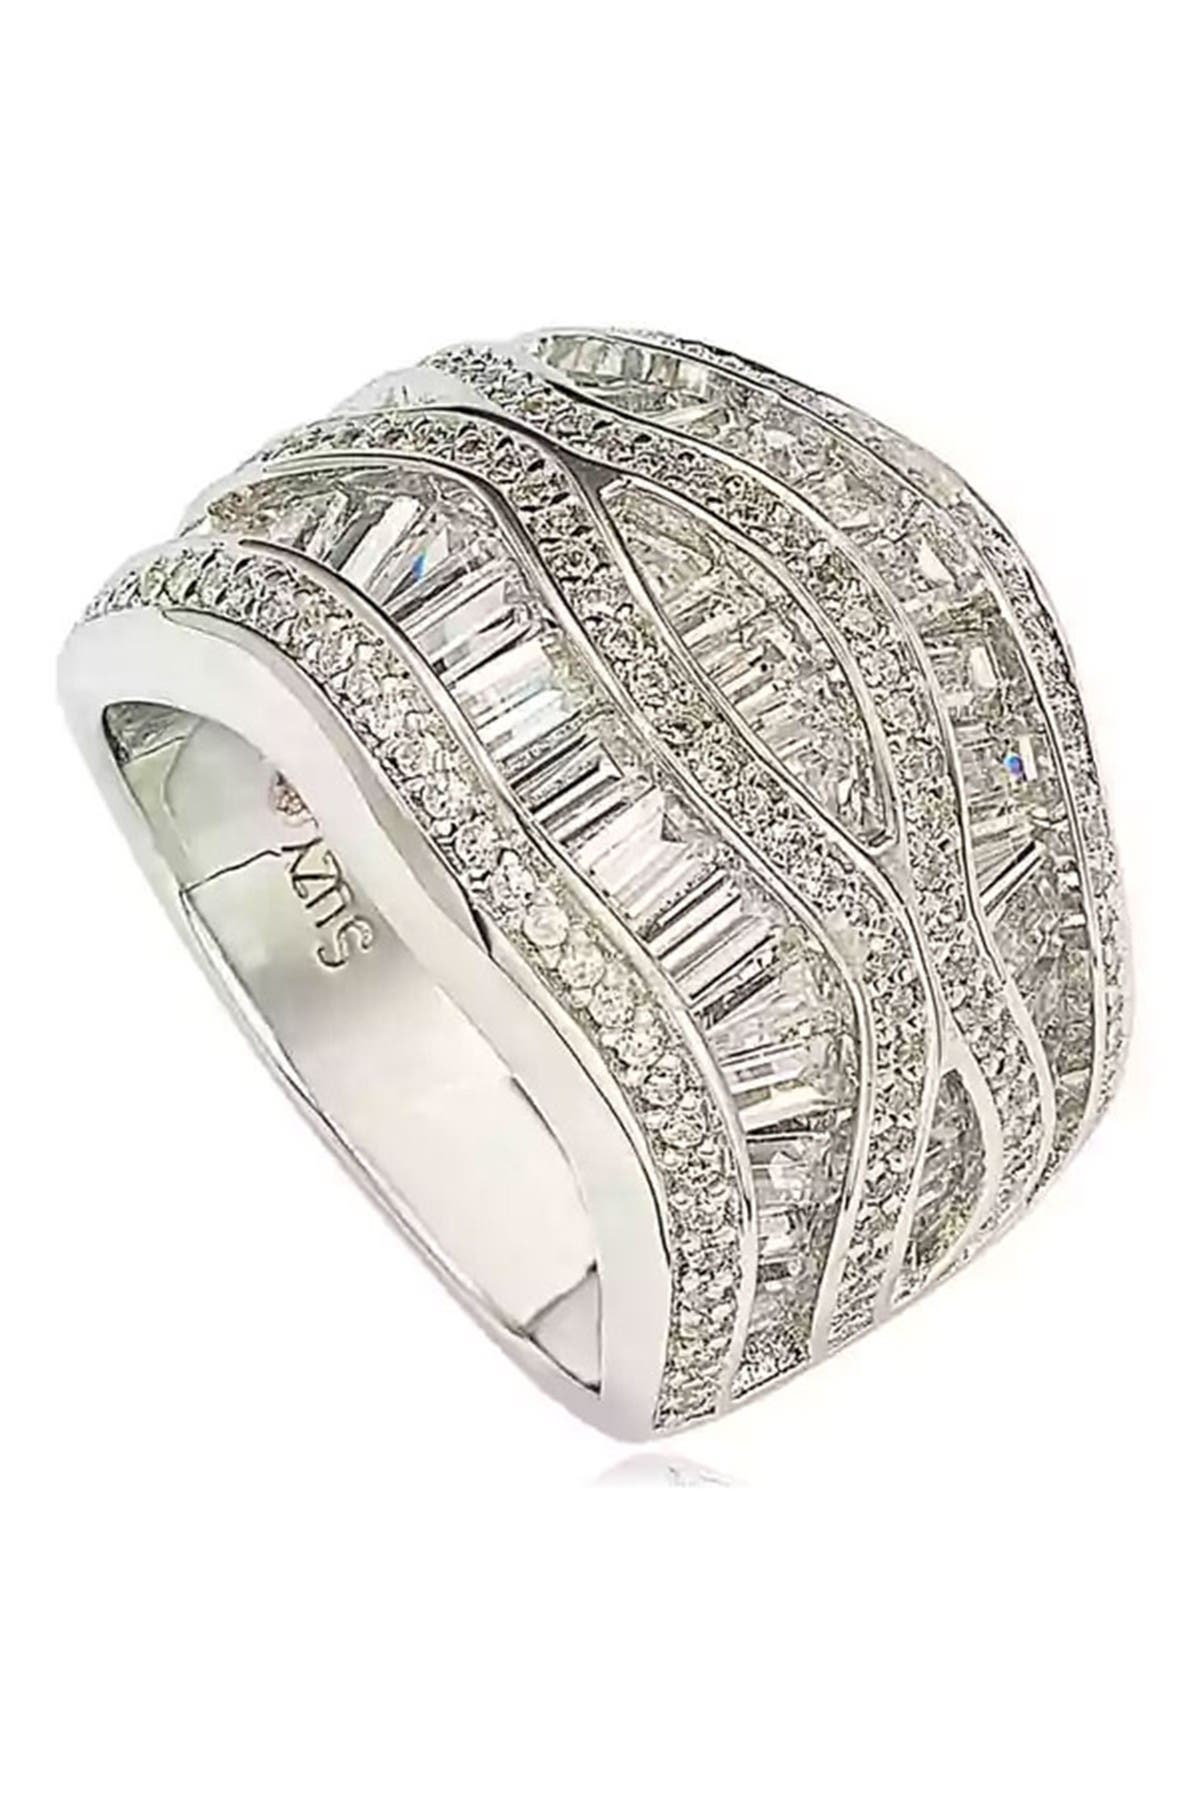 Image of Suzy Levian Sterling Silver Crisscross Chic CZ Ring